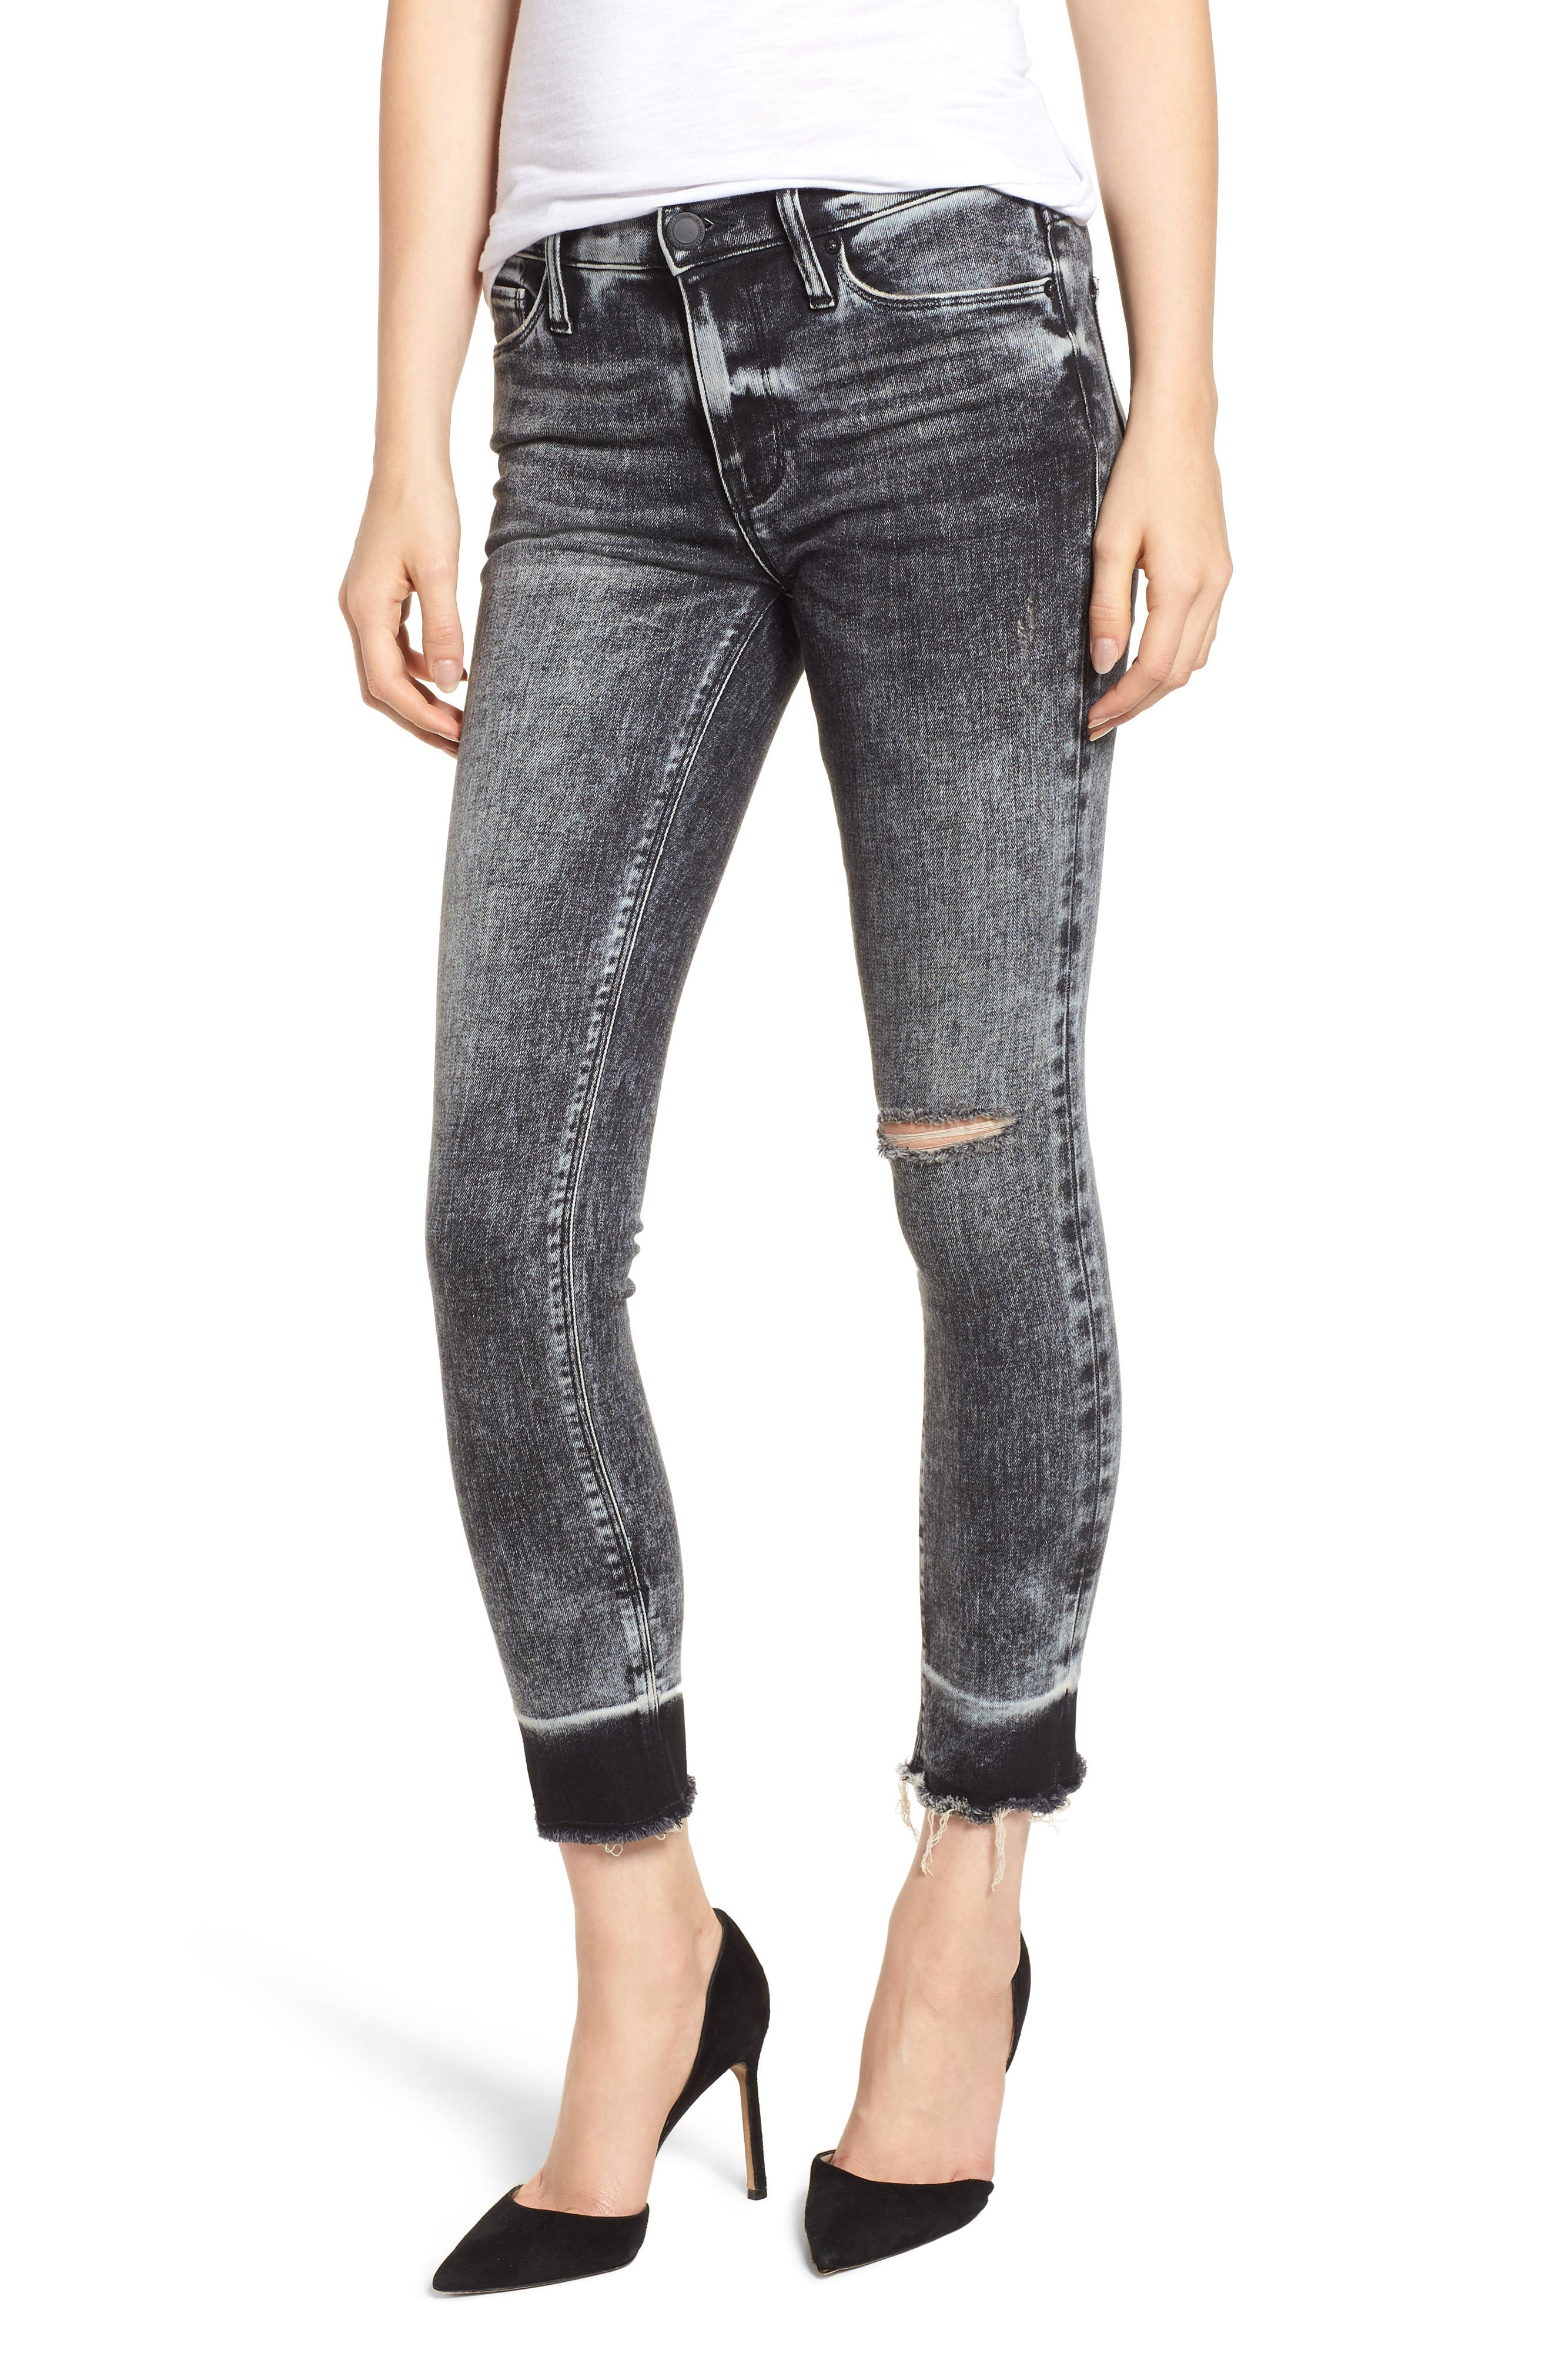 HUDSON JEANS, Nico Raw Hem Crop Super Skinny Jeans, Main thumbnail 1, color, PEPPER